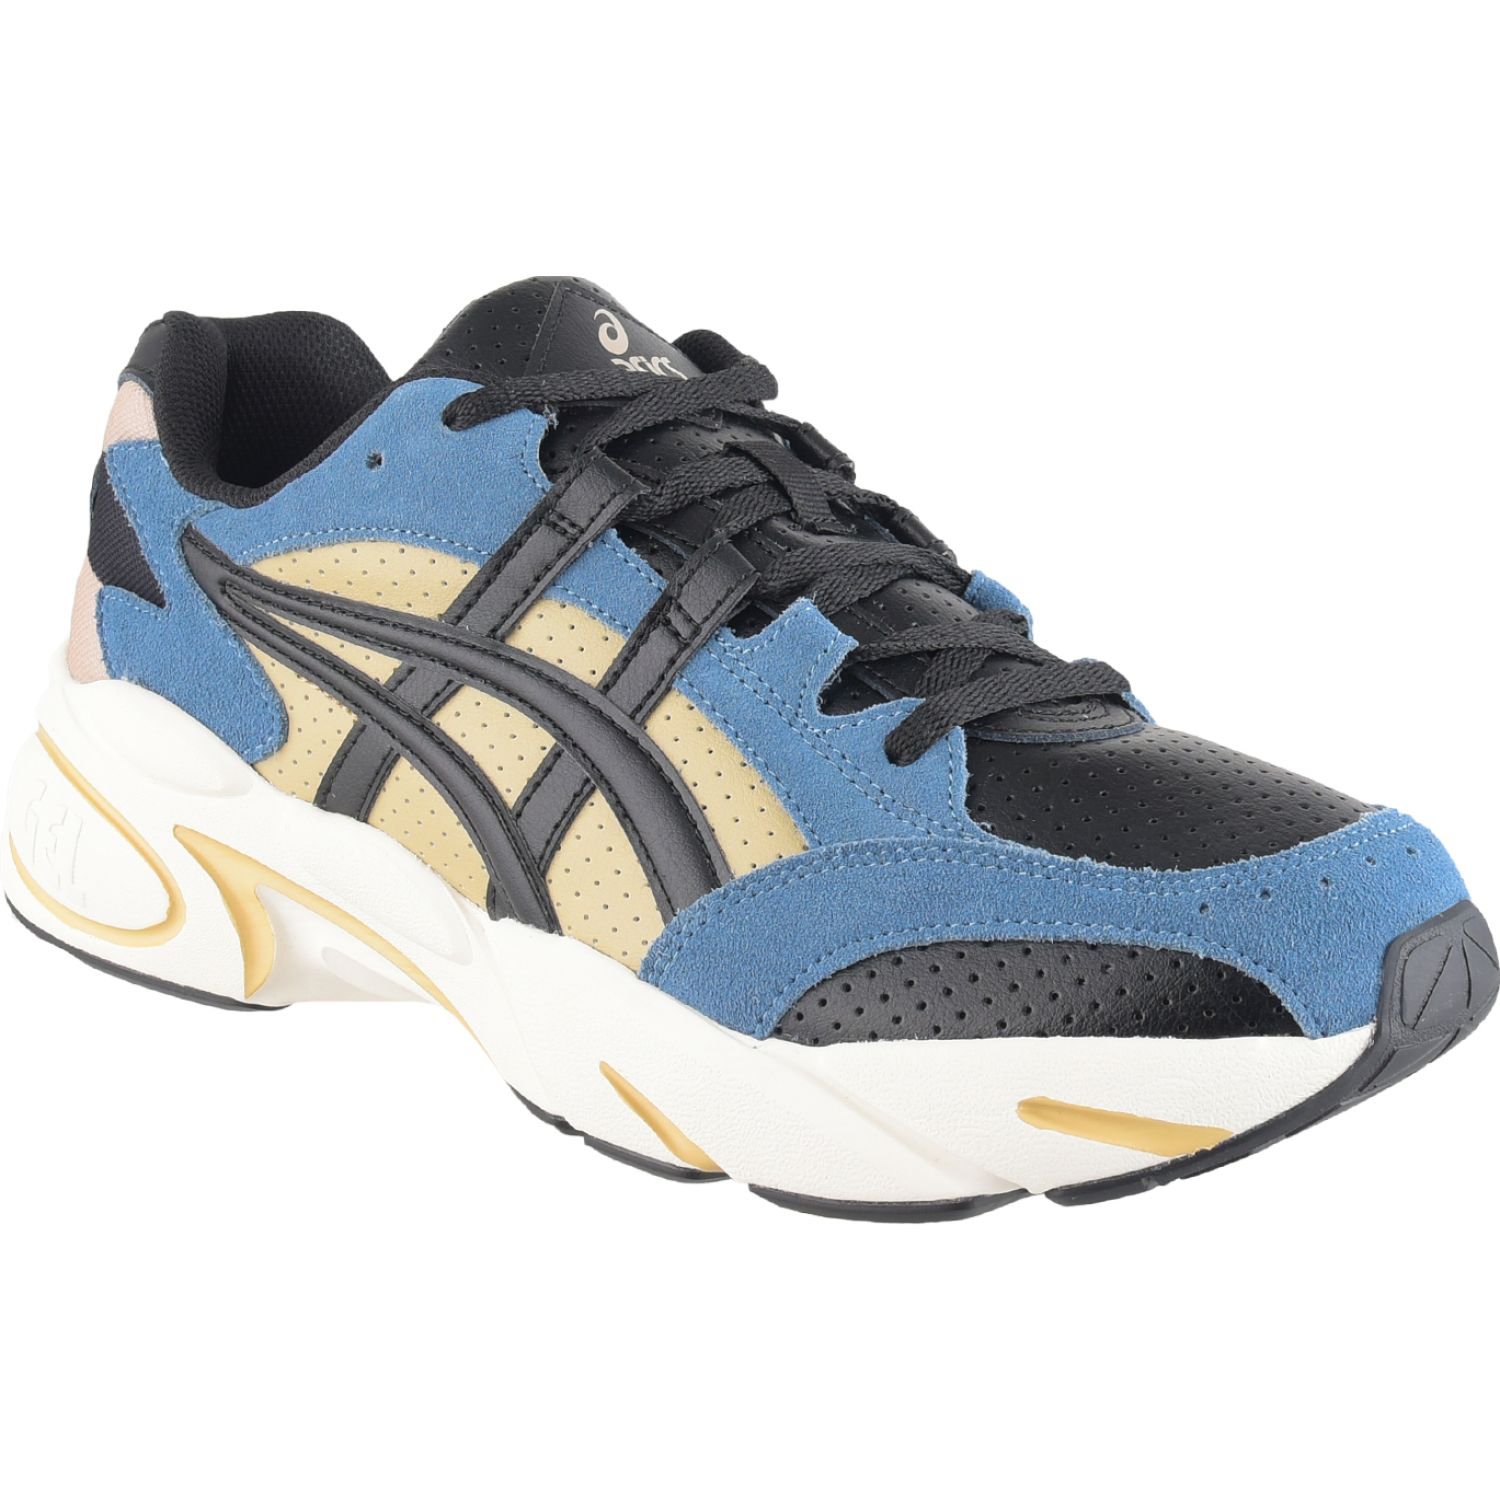 Asics GEL-BND Celeste / negro Walking